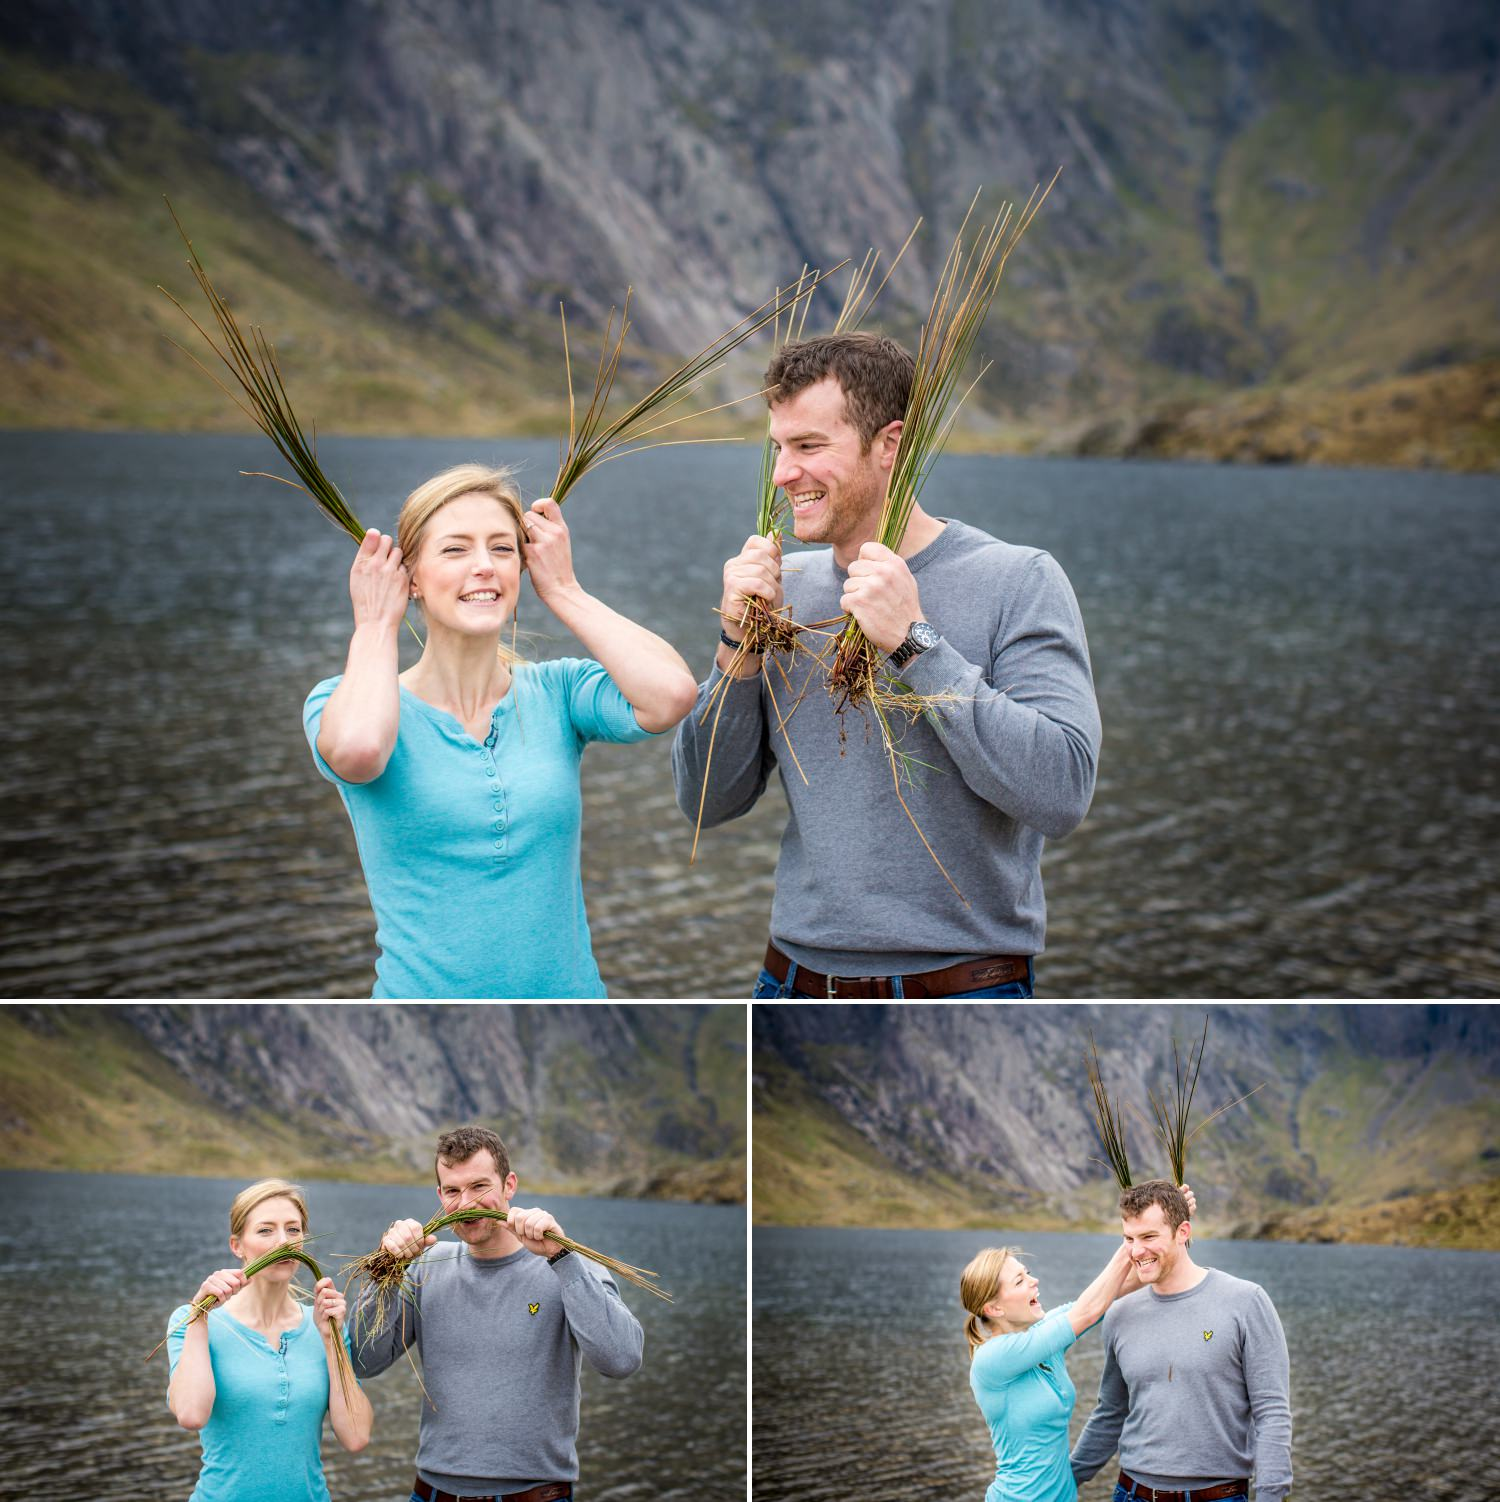 Wedding photographer north west wales